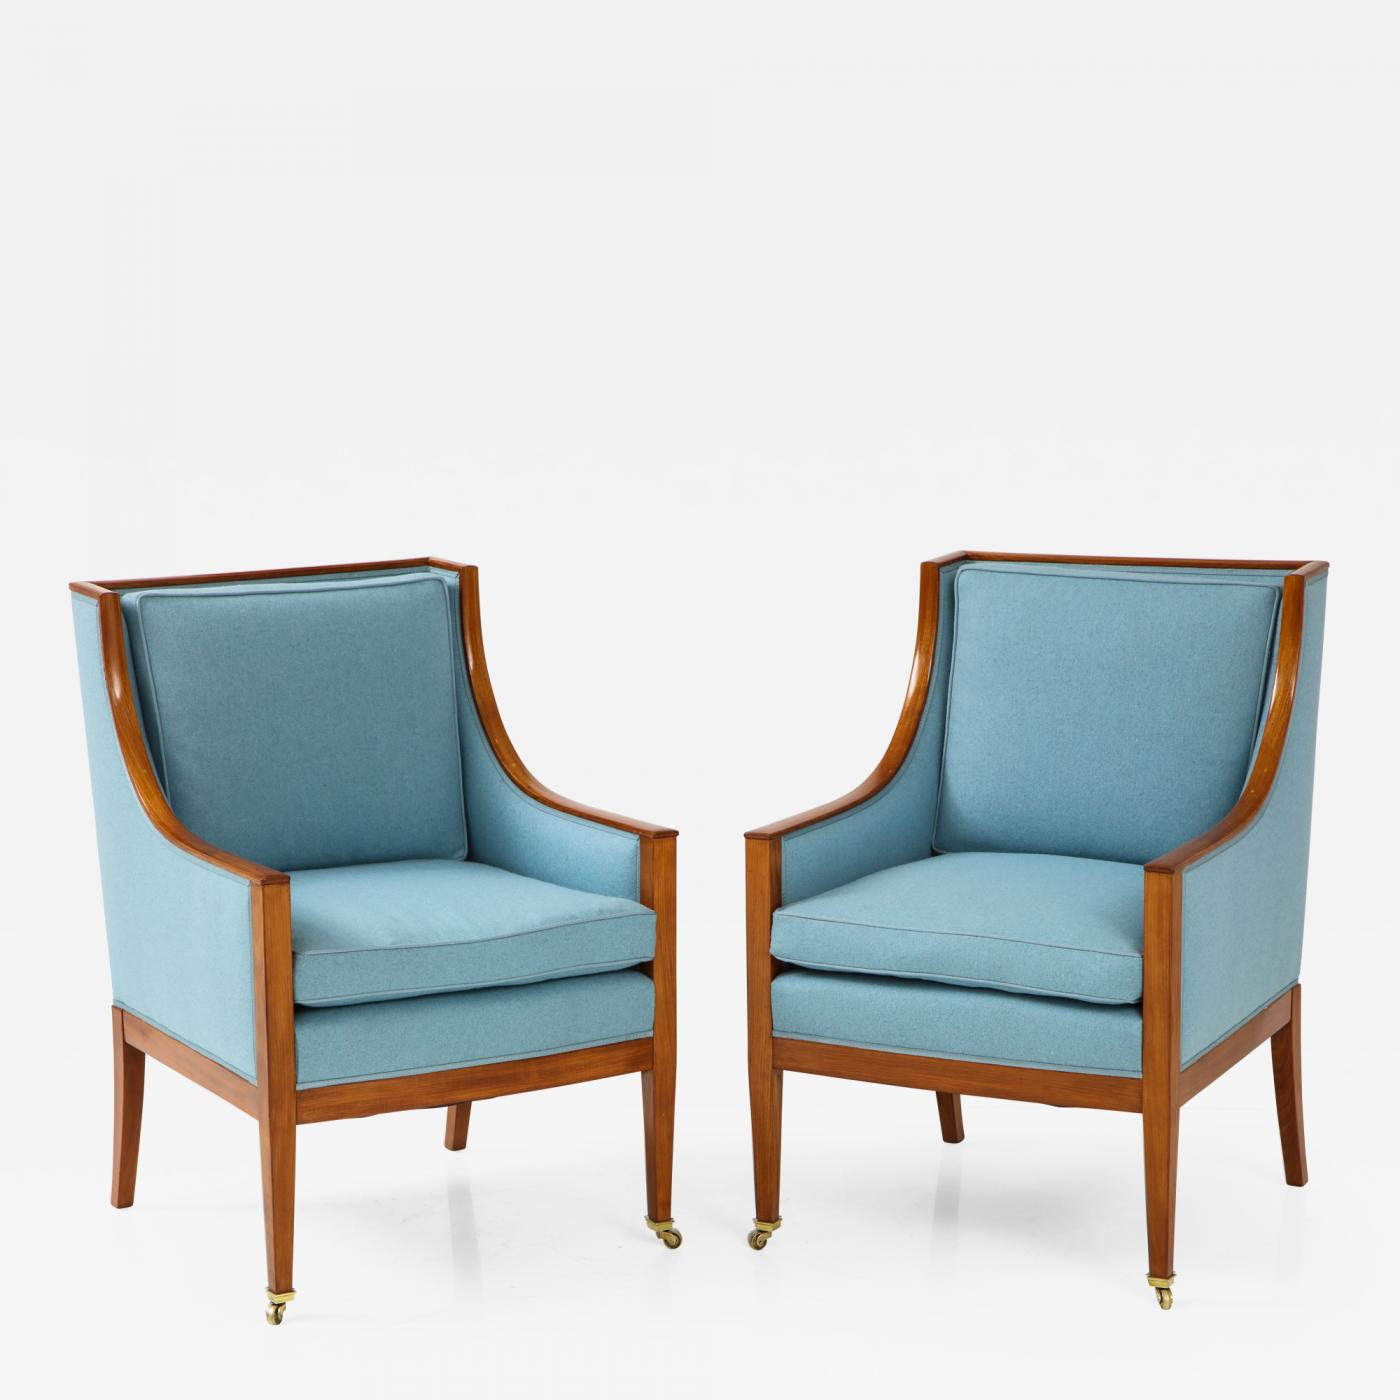 Upholstered Arm Chairs A Pair Of Swedish Mahogany Upholstered Armchairs Circa 1930